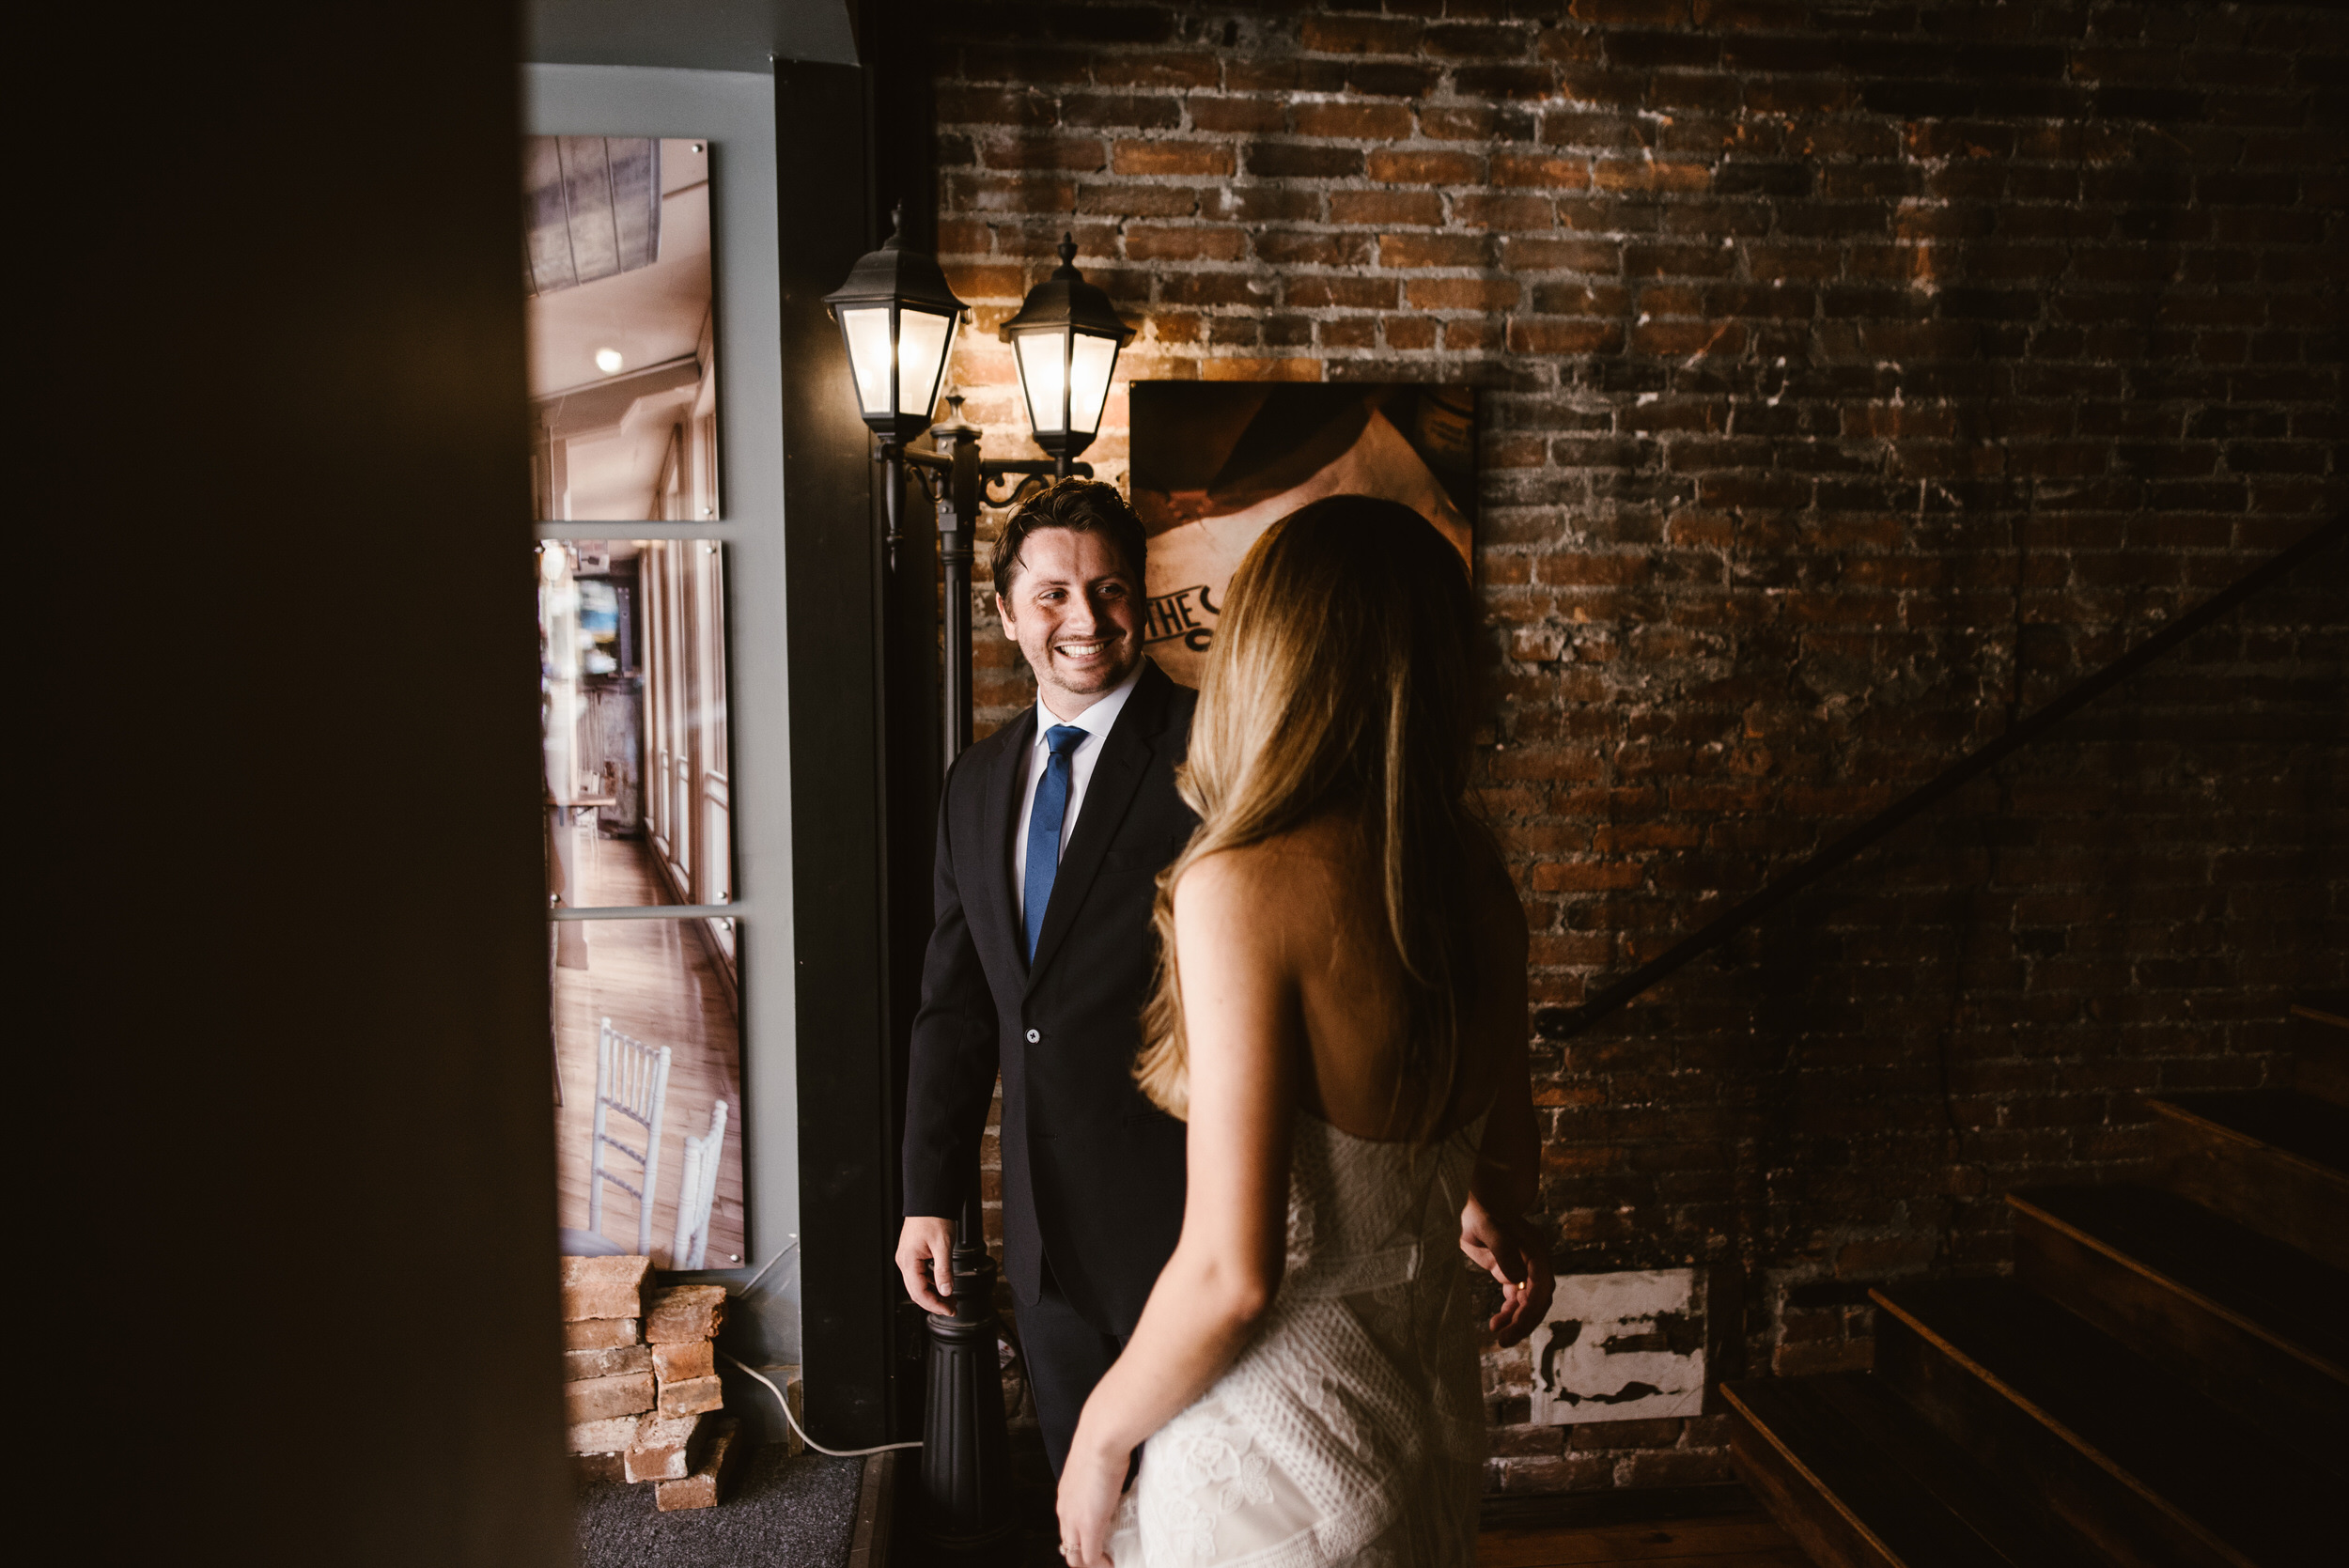 Stillwater-Minnesota-Wedding-Loft-at-Studio-J-Kaylie-Sirek-Photography-10.jpg